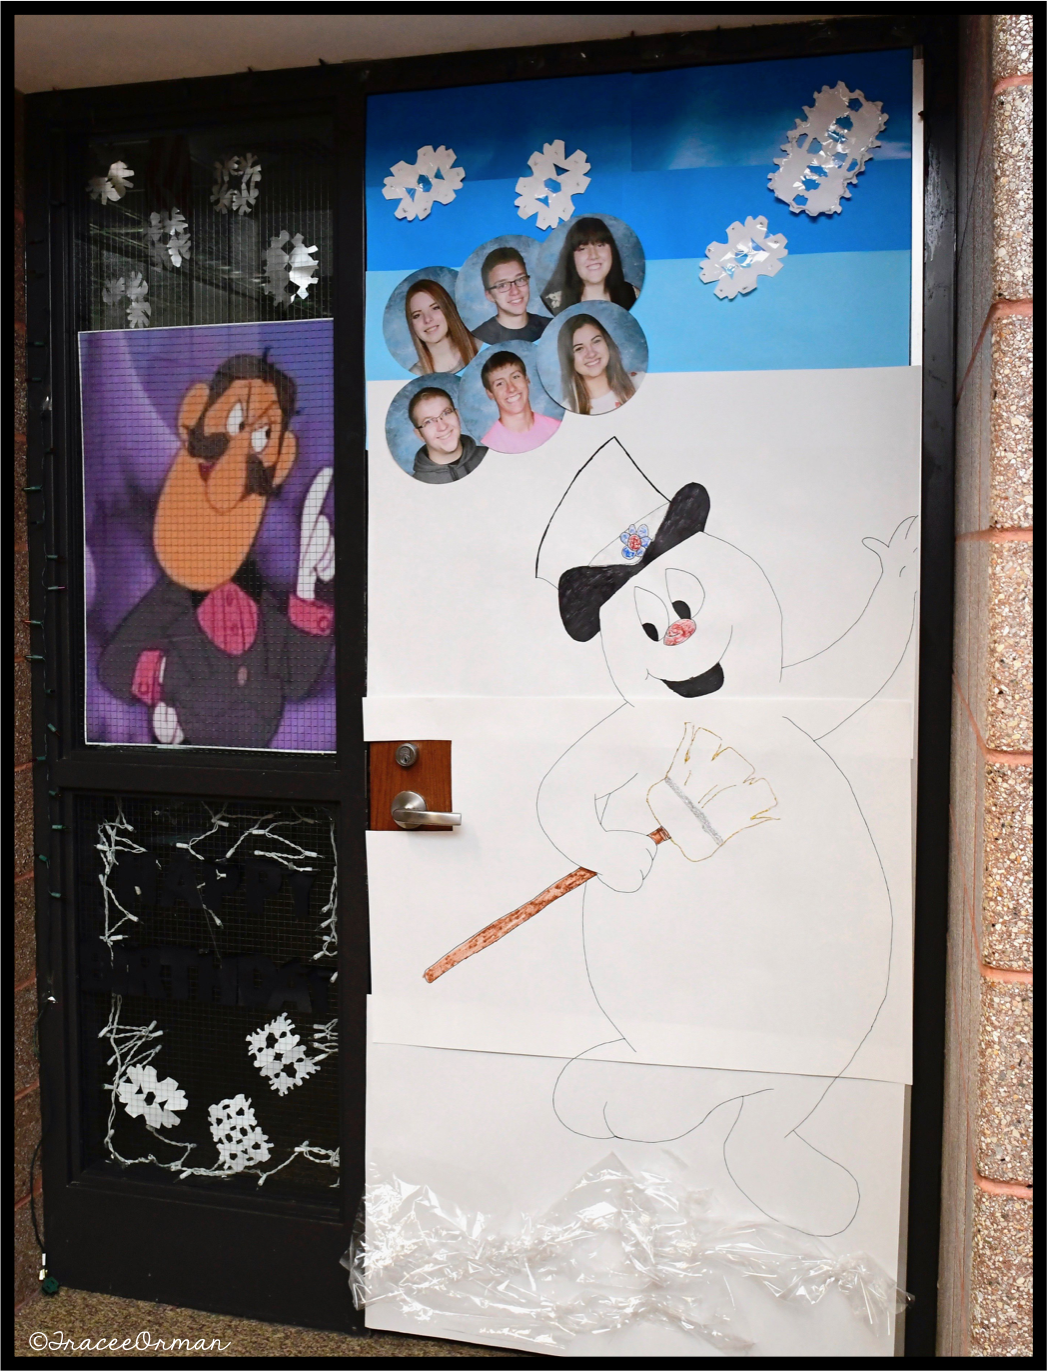 Mrs Orman S Classroom Holiday Door Decorating